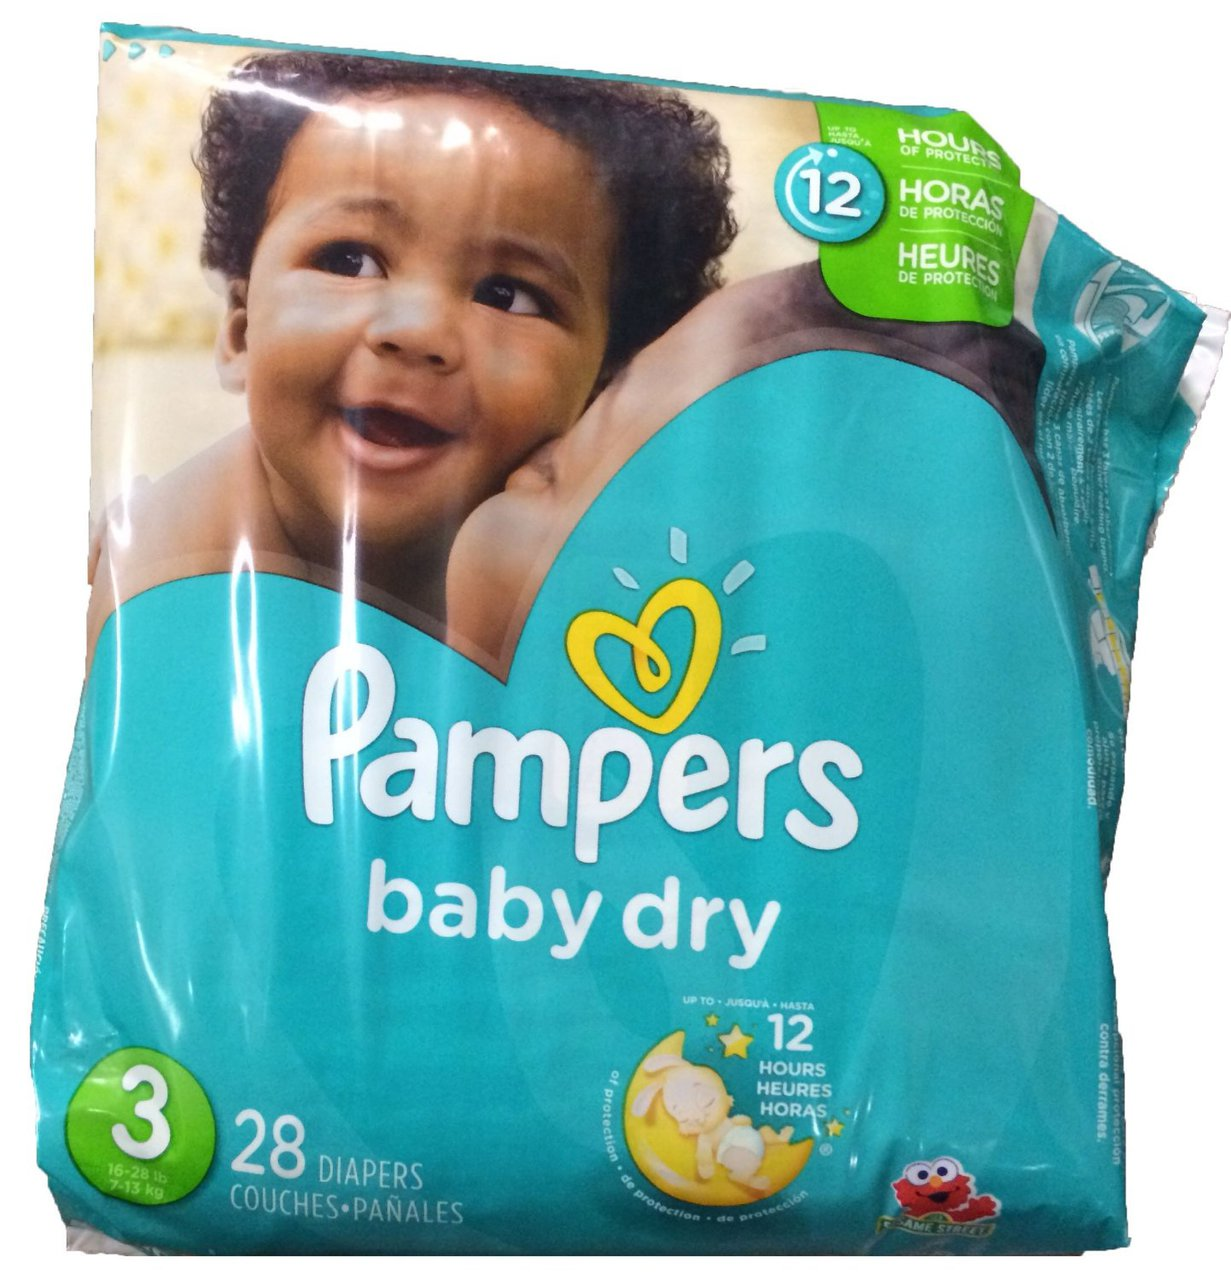 Procter & Gamble 4 PACKS : Pampers Baby Dry Diapers, Size...